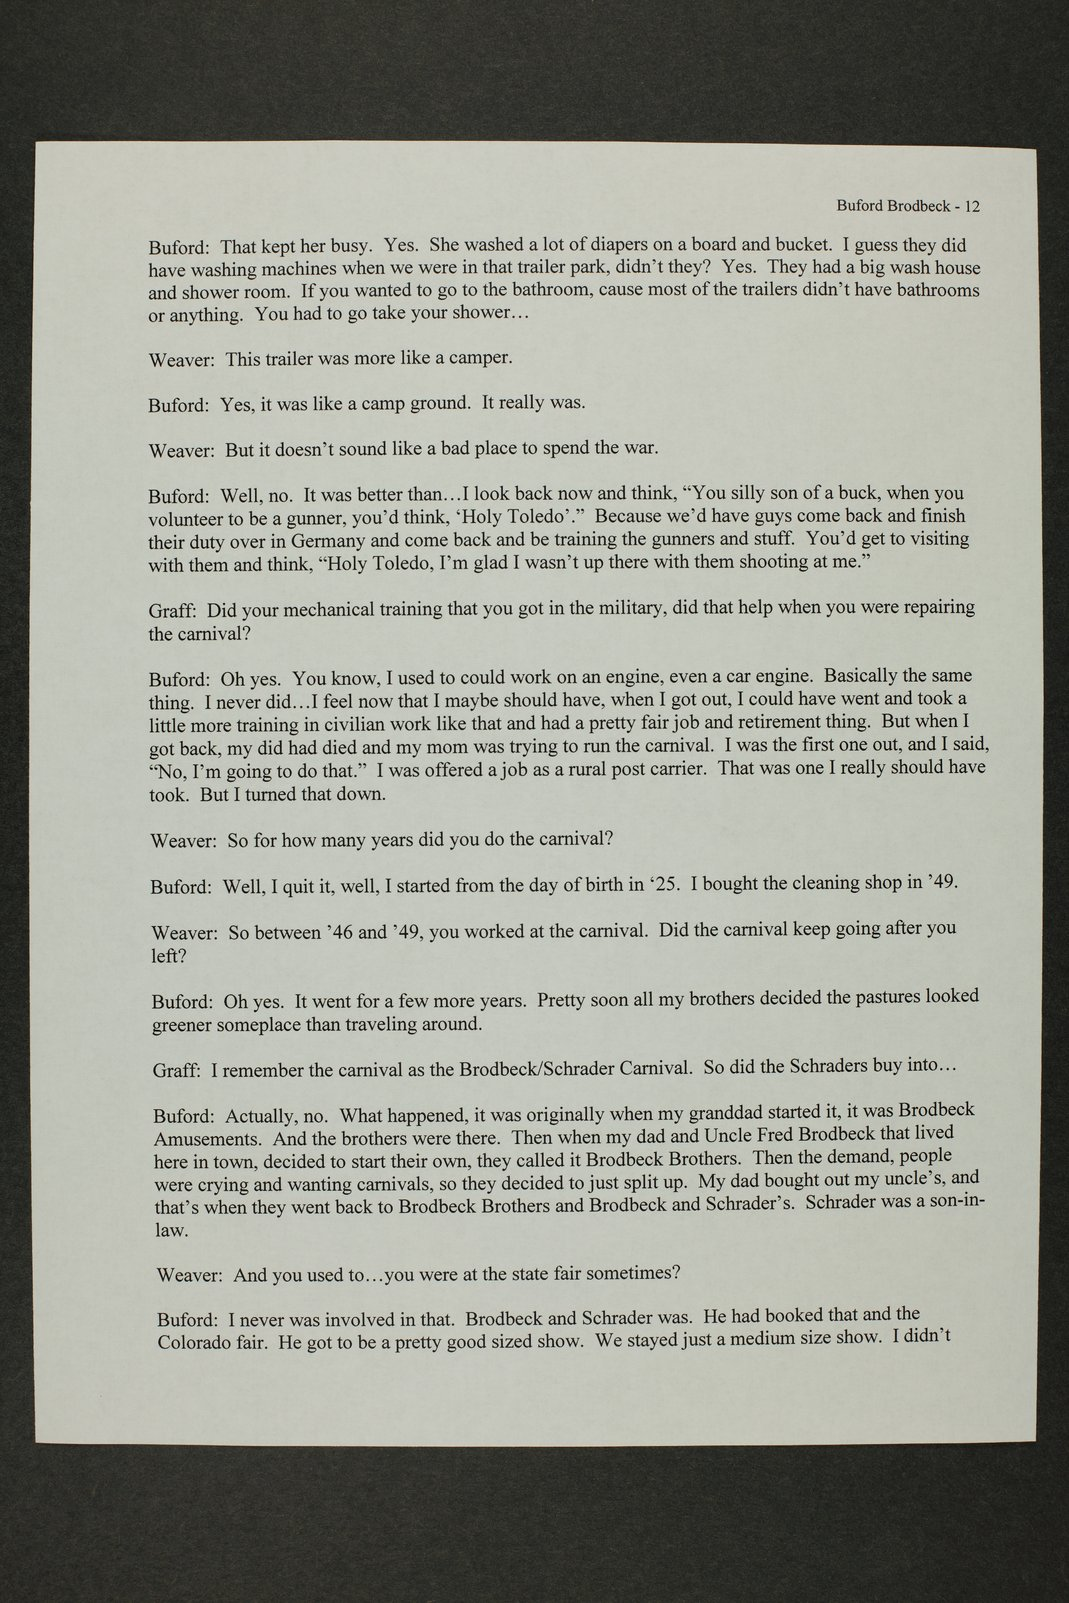 Buford Brodbeck interview, WWII oral history, Kinsley, Kansas - 12